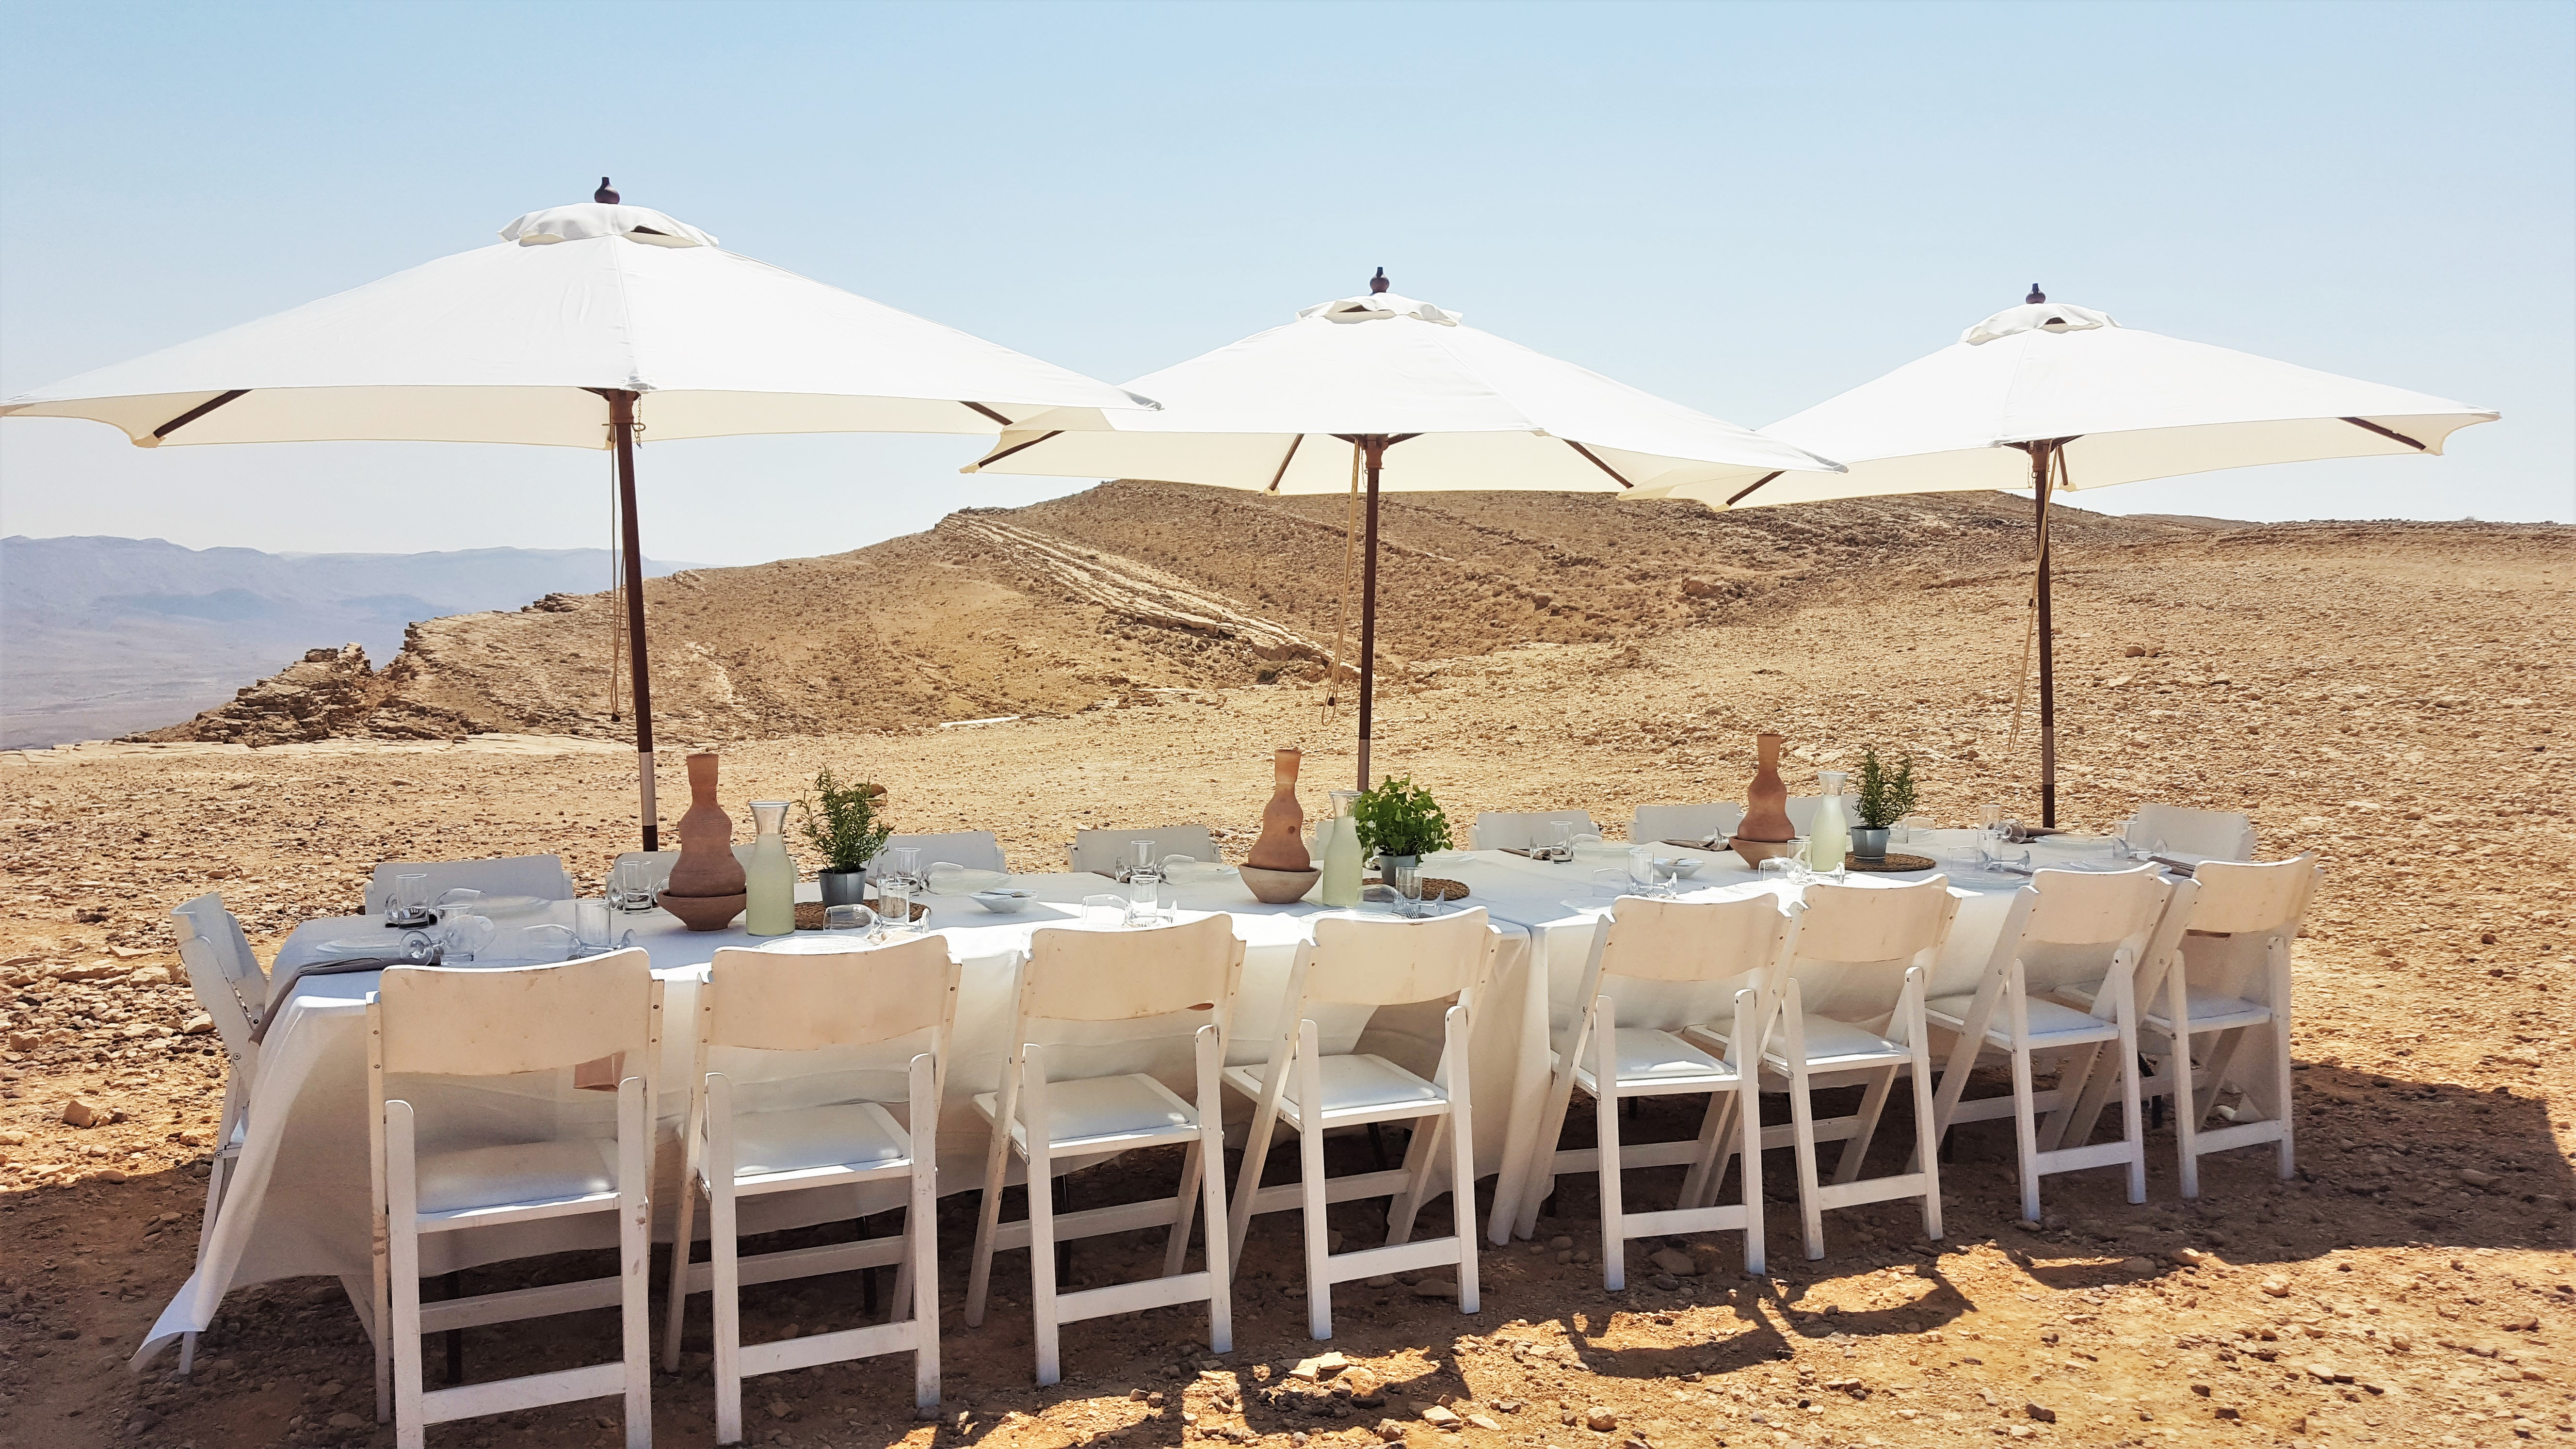 desert outdoor lunch mitzpe ramon